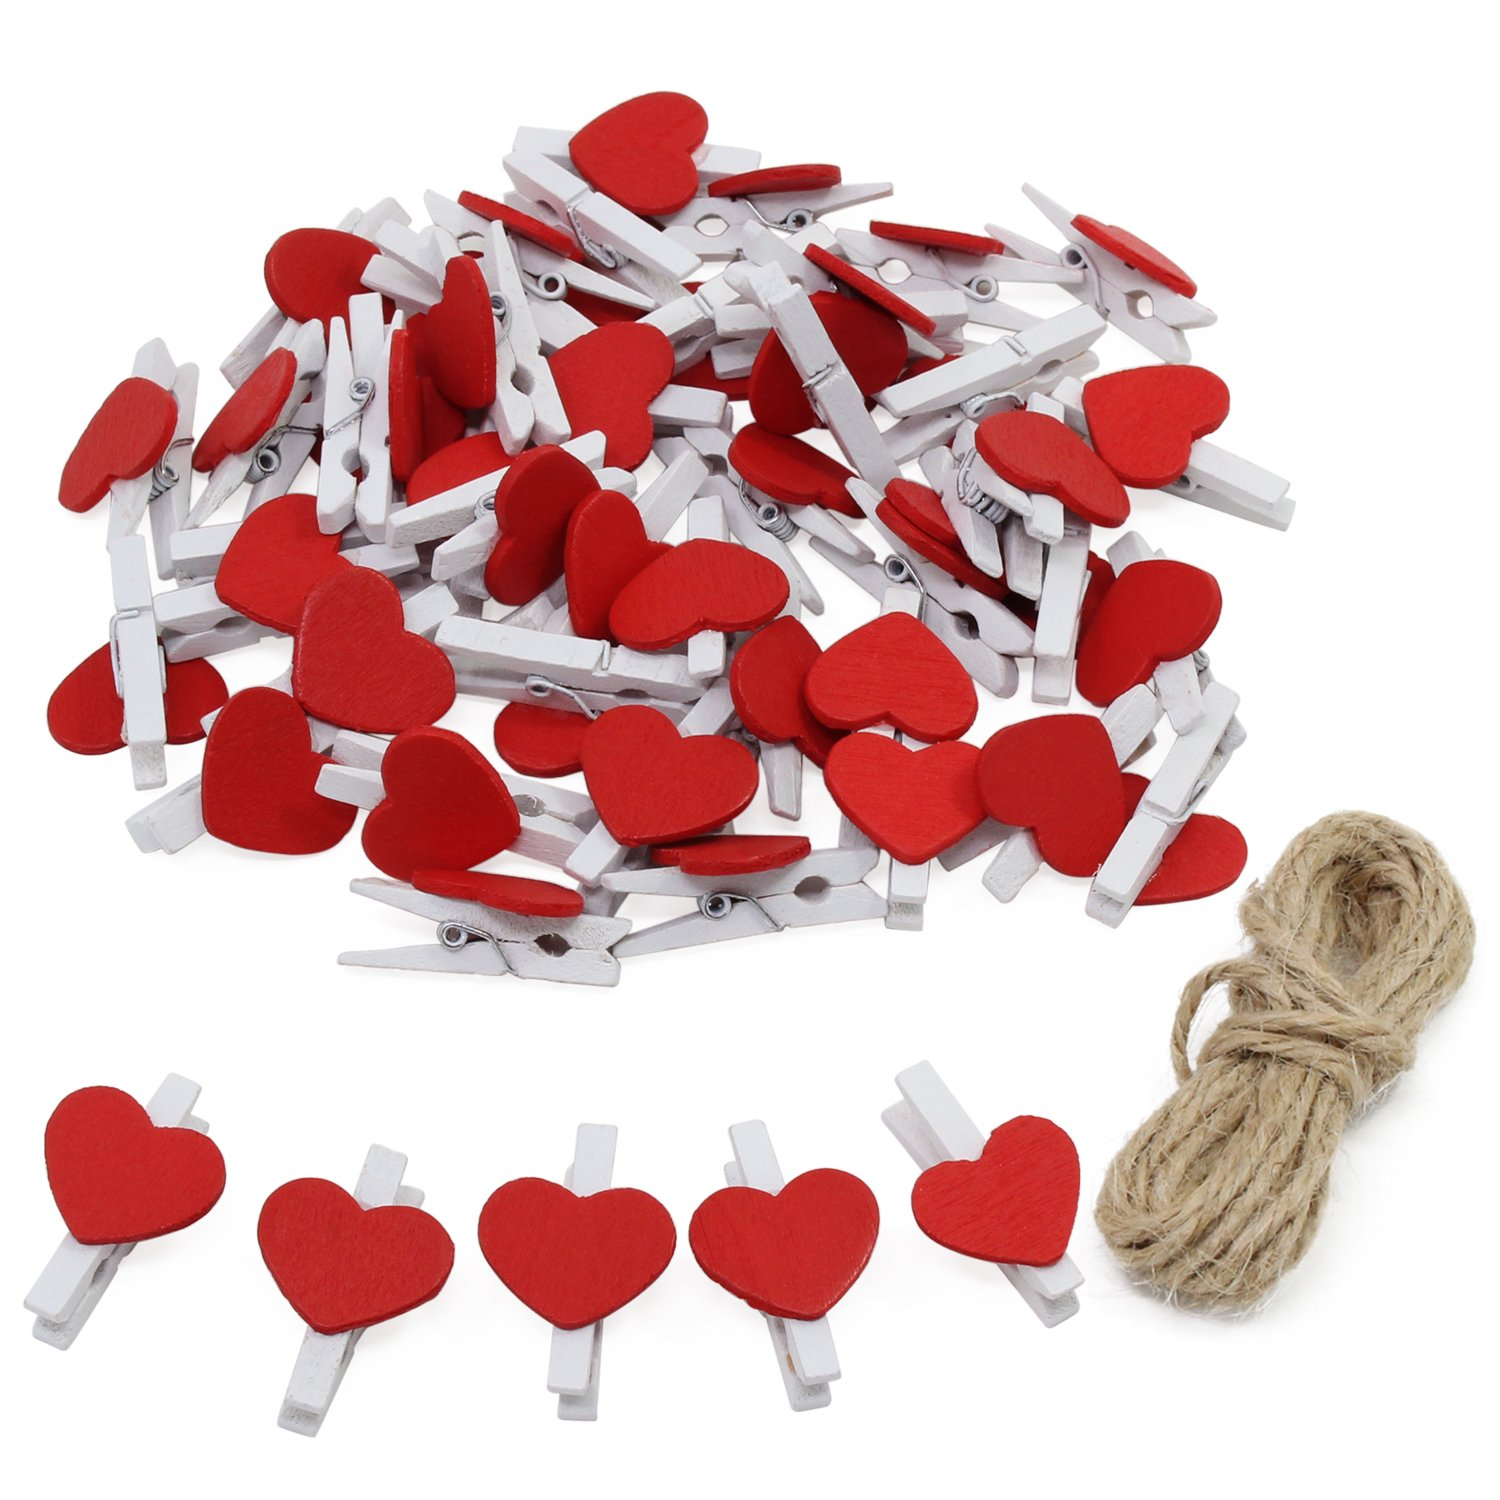 keesin foto Clips Clothespins Mini madera Natural Papel fotográfico pinzas con forma de corazón DIY Craft Clips con 10 m yute Twine 50pcs Colored Heart-50PCS